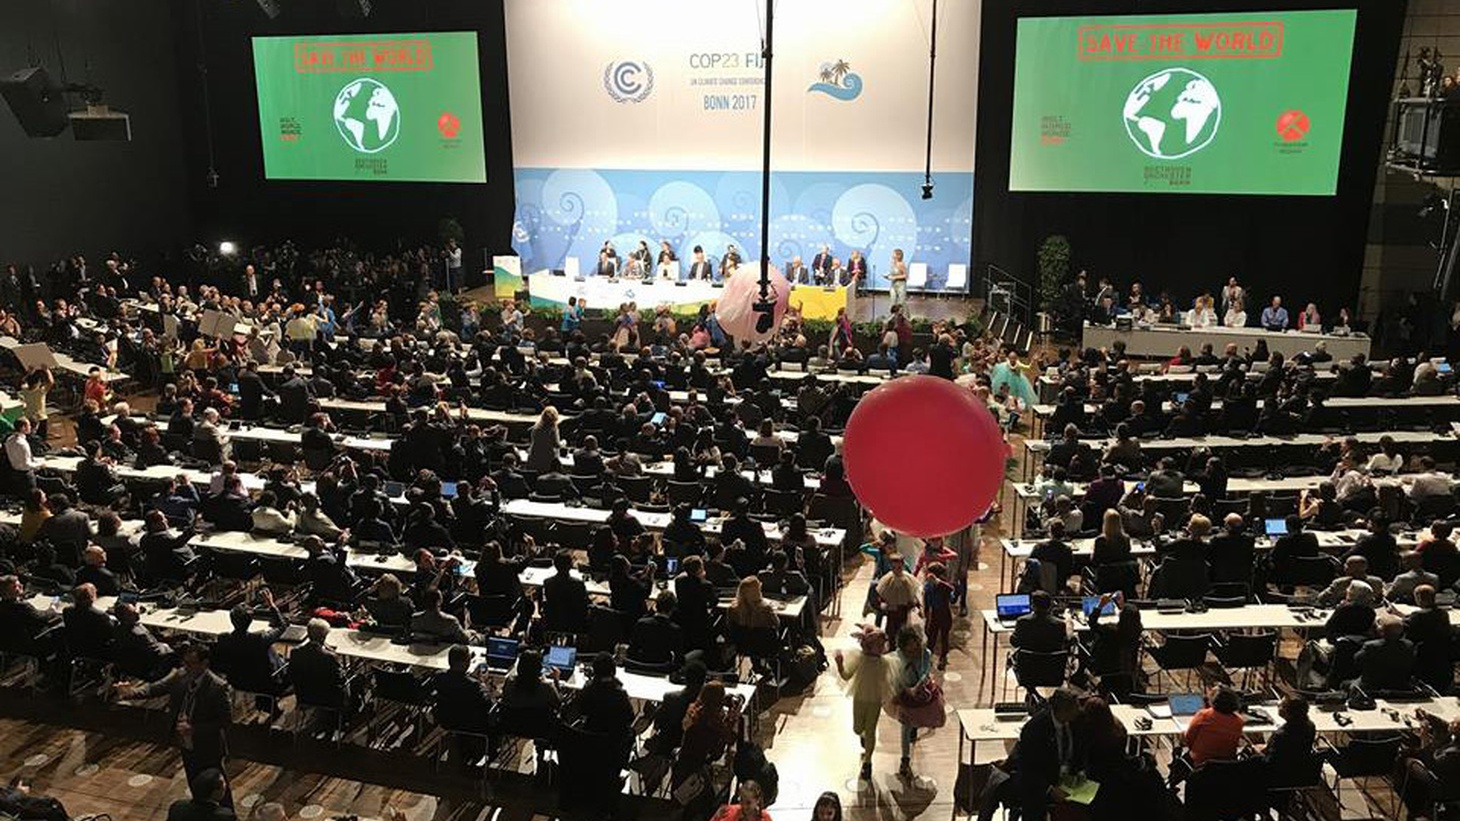 In Bonn, Germany, negotiators are trying to sharpen the fine points of the Paris Climate Accord, and US diplomats are in attendance. But they have limitations, given that President Trump has pledged to withdraw from the Accord. The US can't officially pull out until the year 2020.